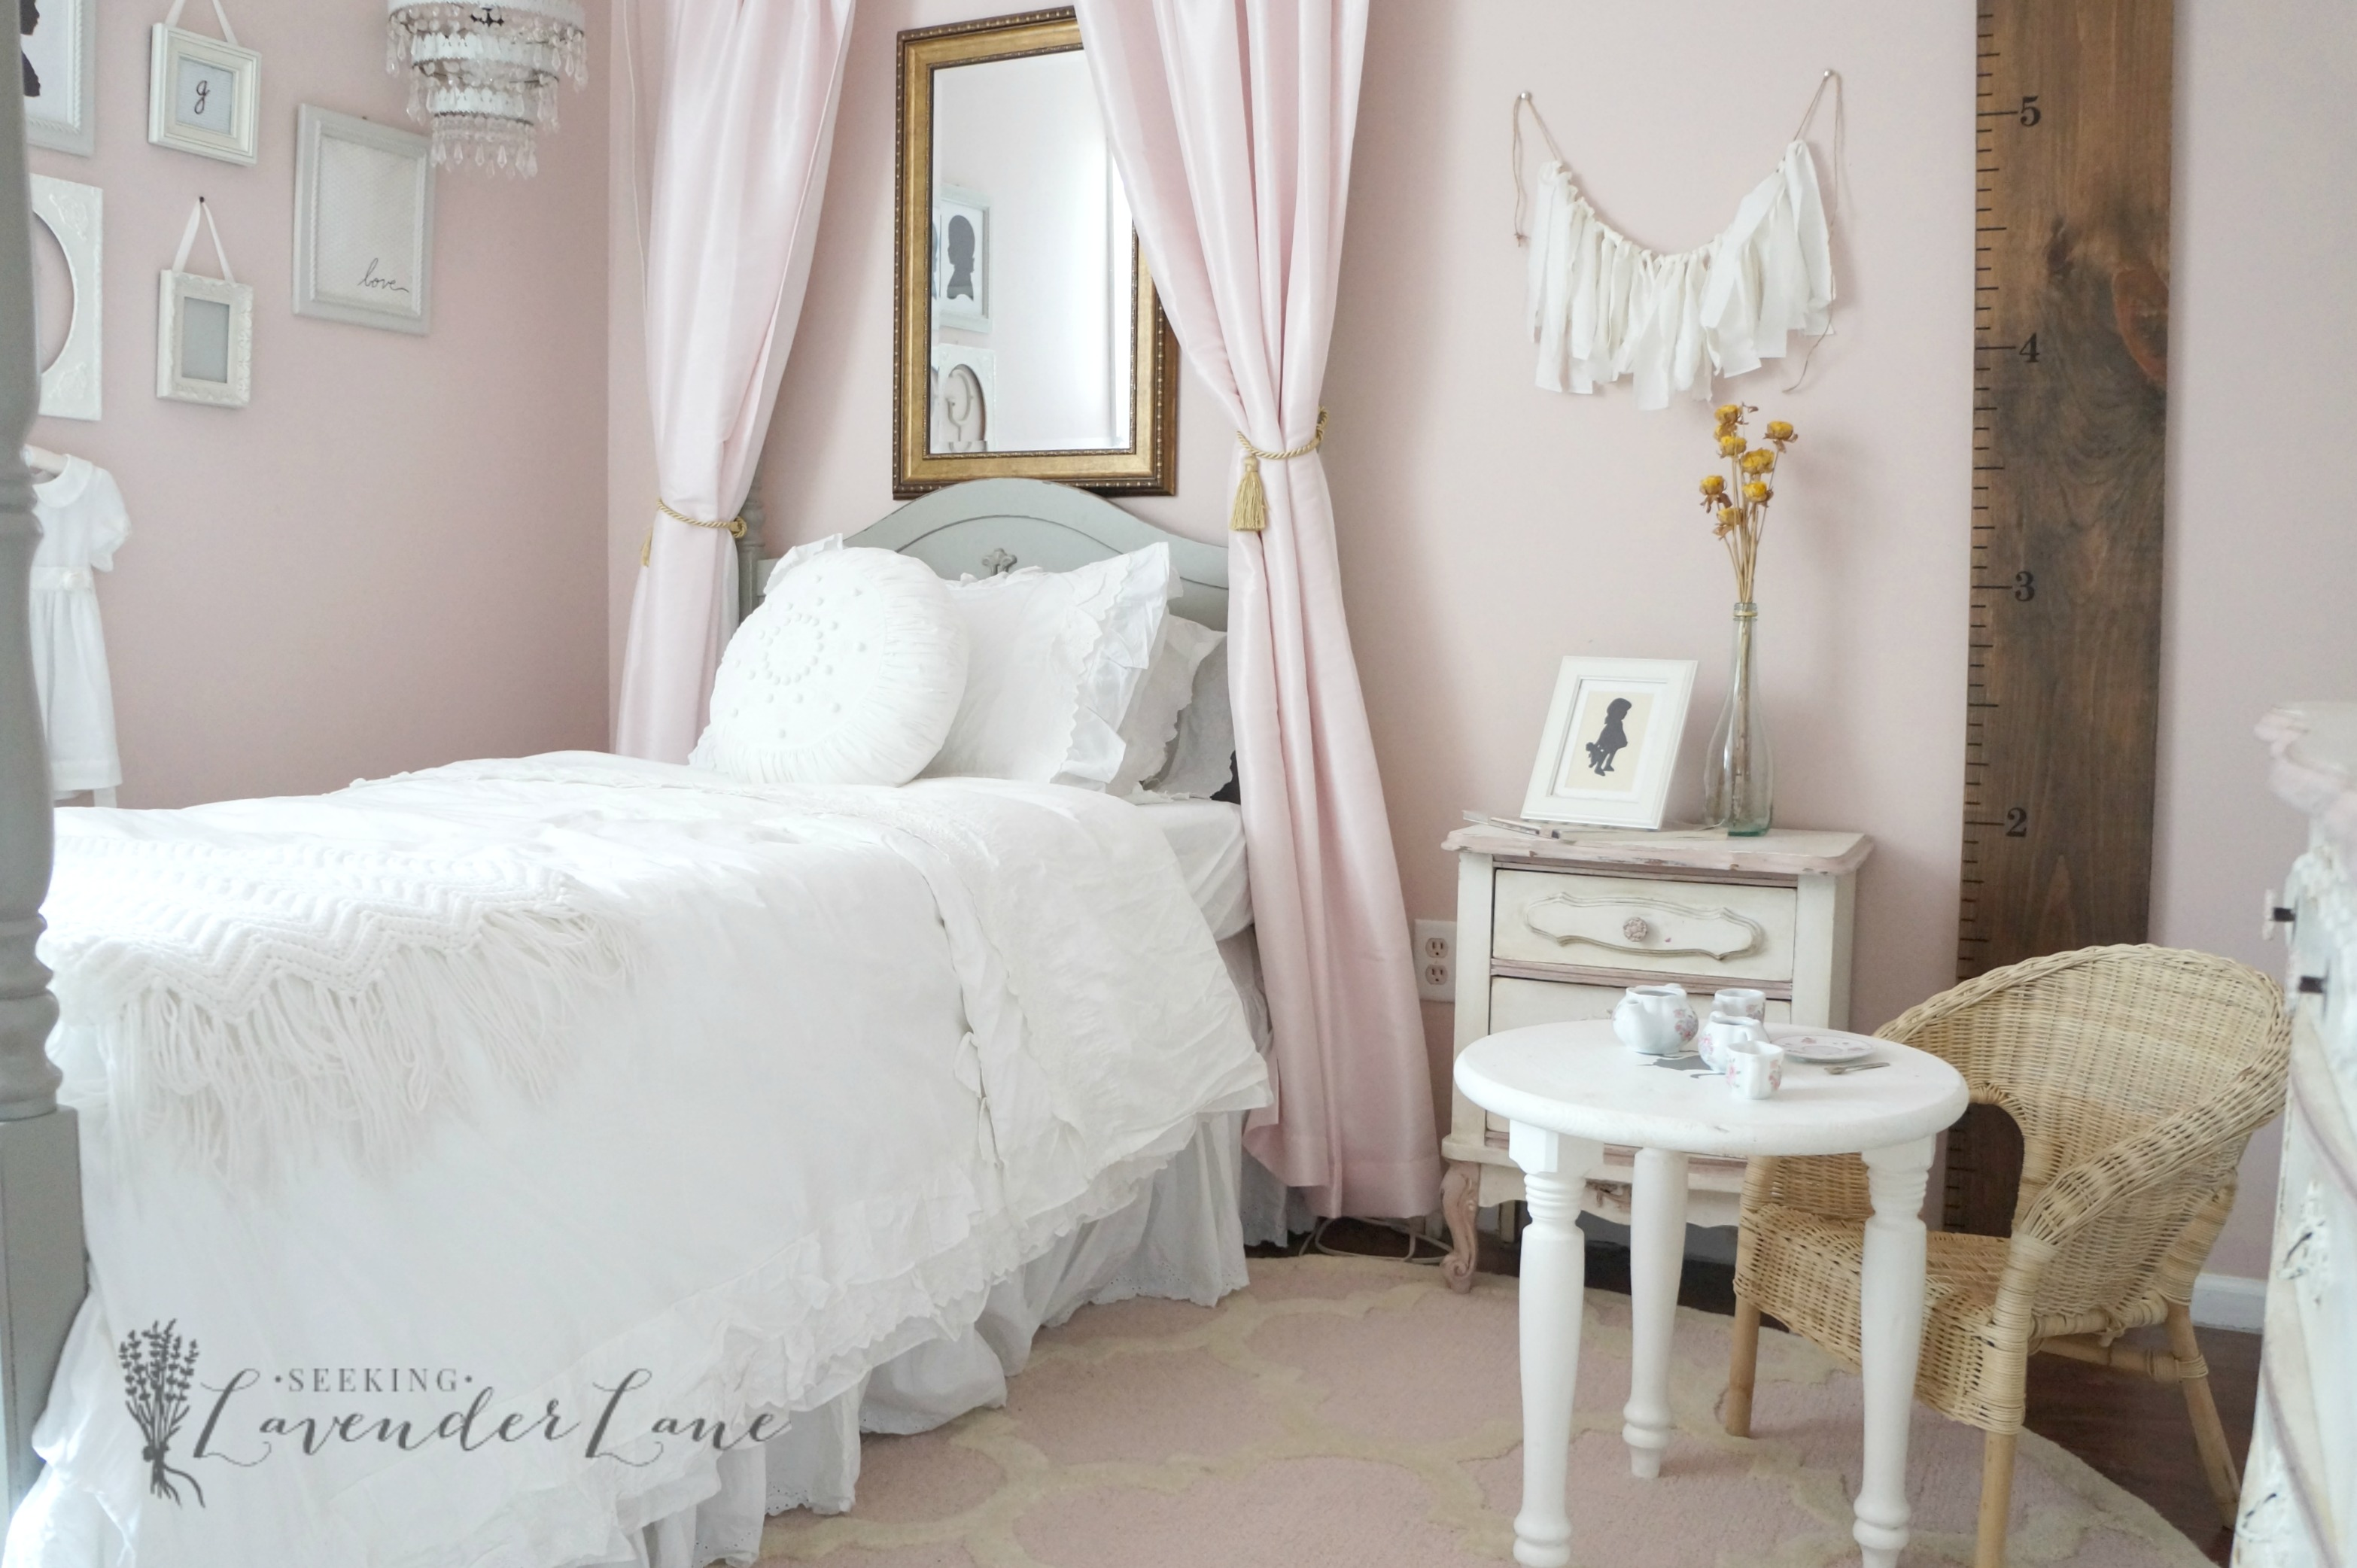 Pink vintage girl 39 s bedroom seeking lavendar lane - Girl bed room ...